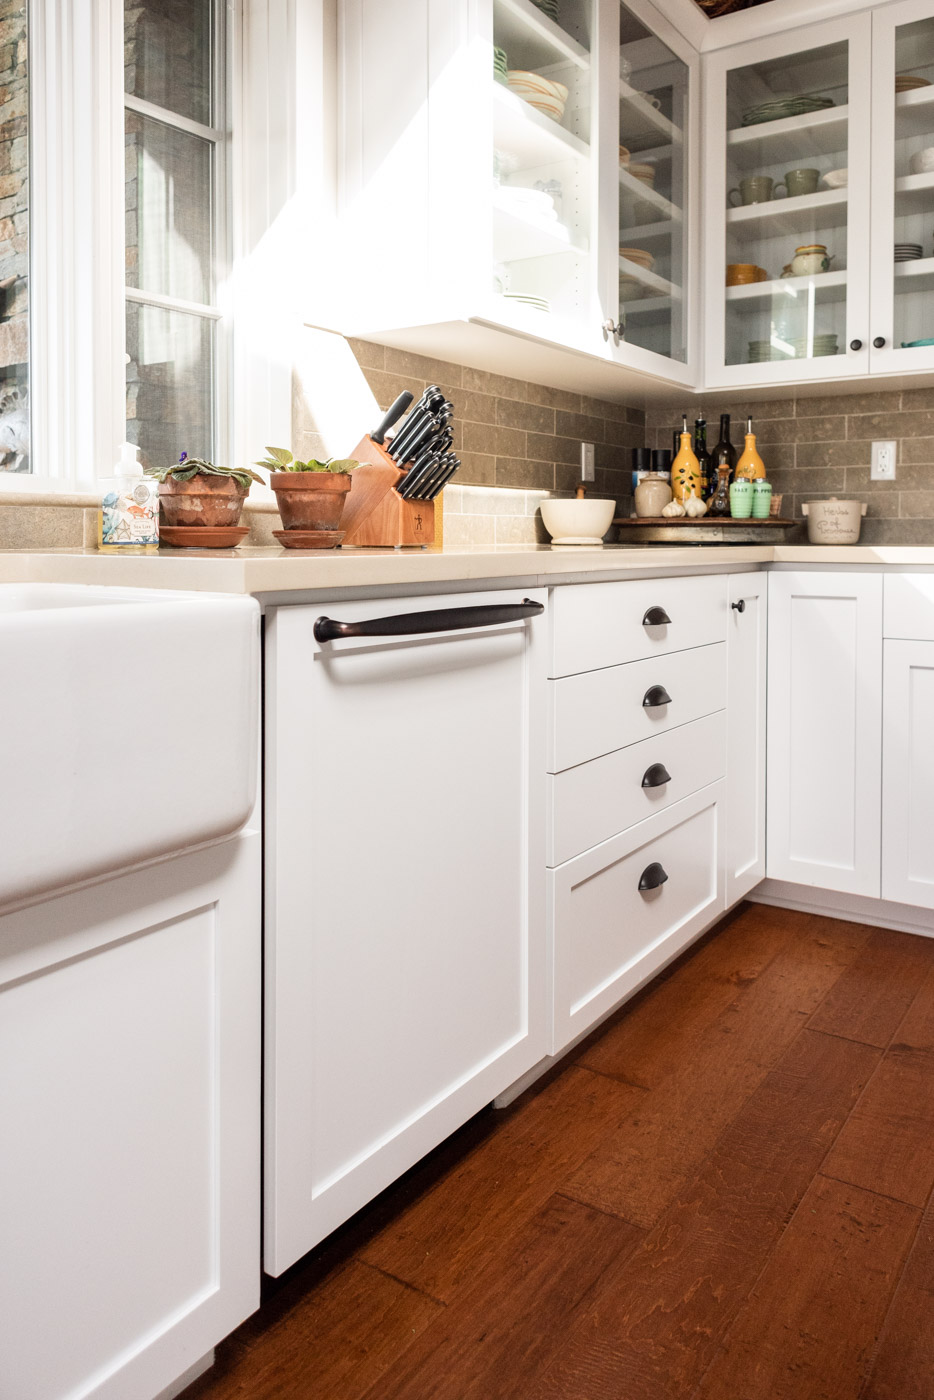 Coastal Craftsman kitchen with custom white painted shaker cabinets and dishwasher panel